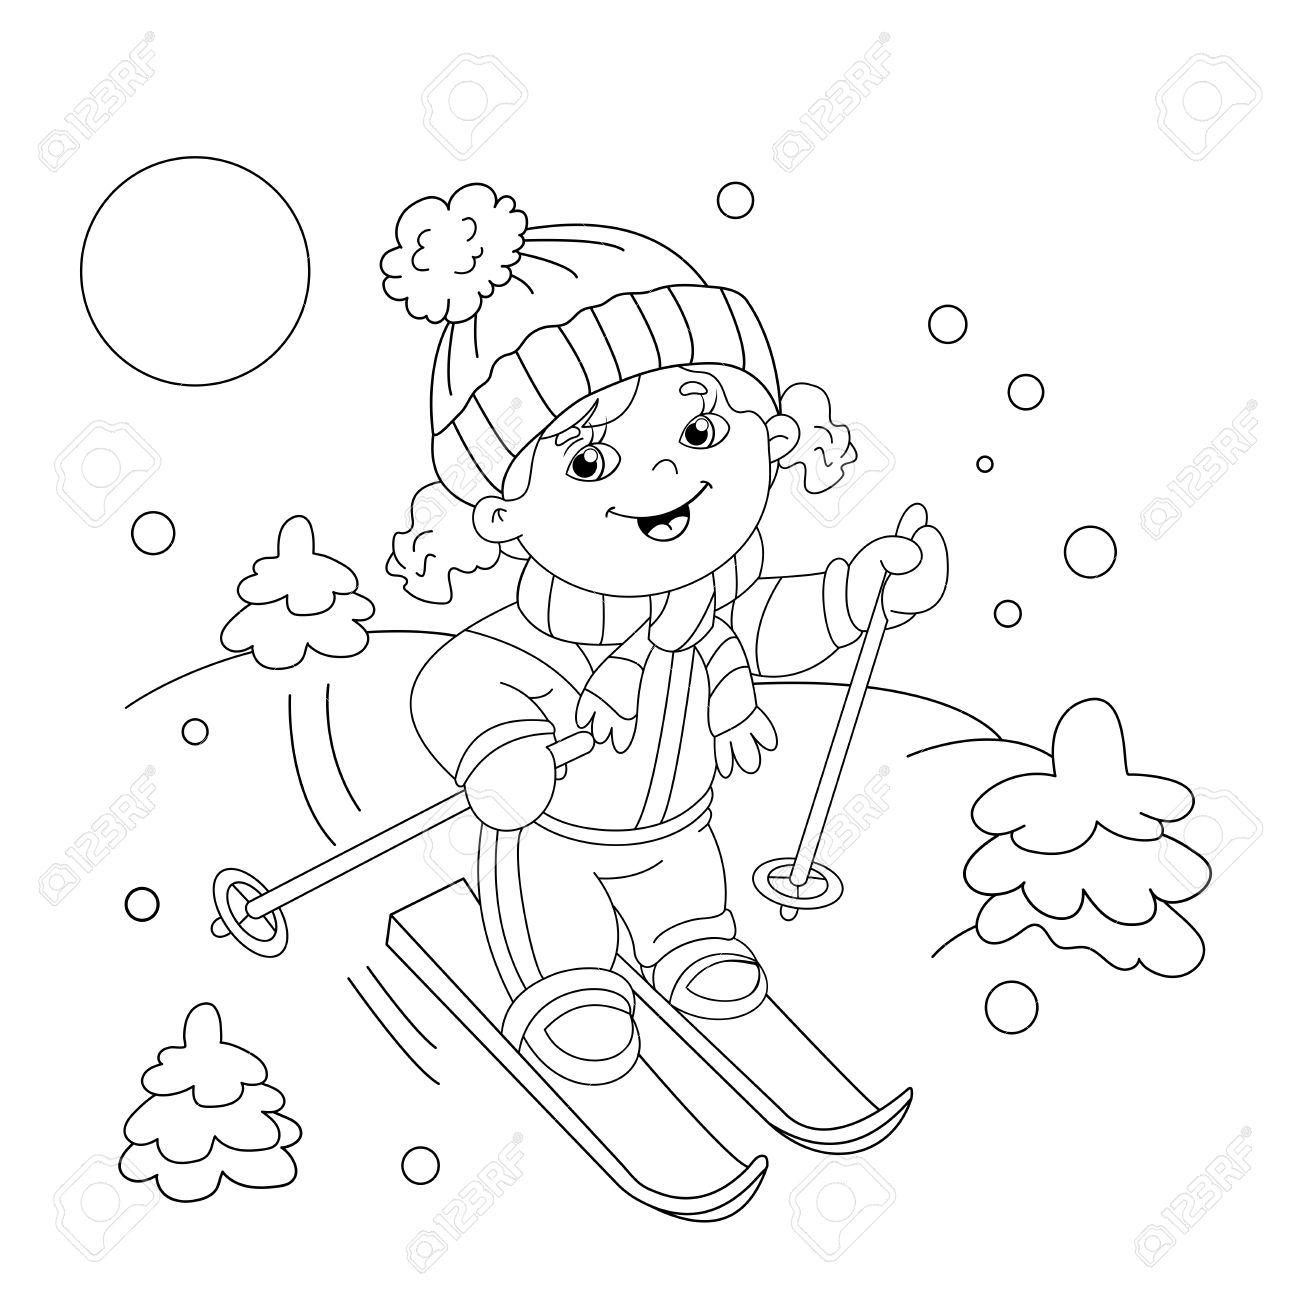 Coloring Page Outline Of Cartoon Girl Riding On Skis. Winter ...